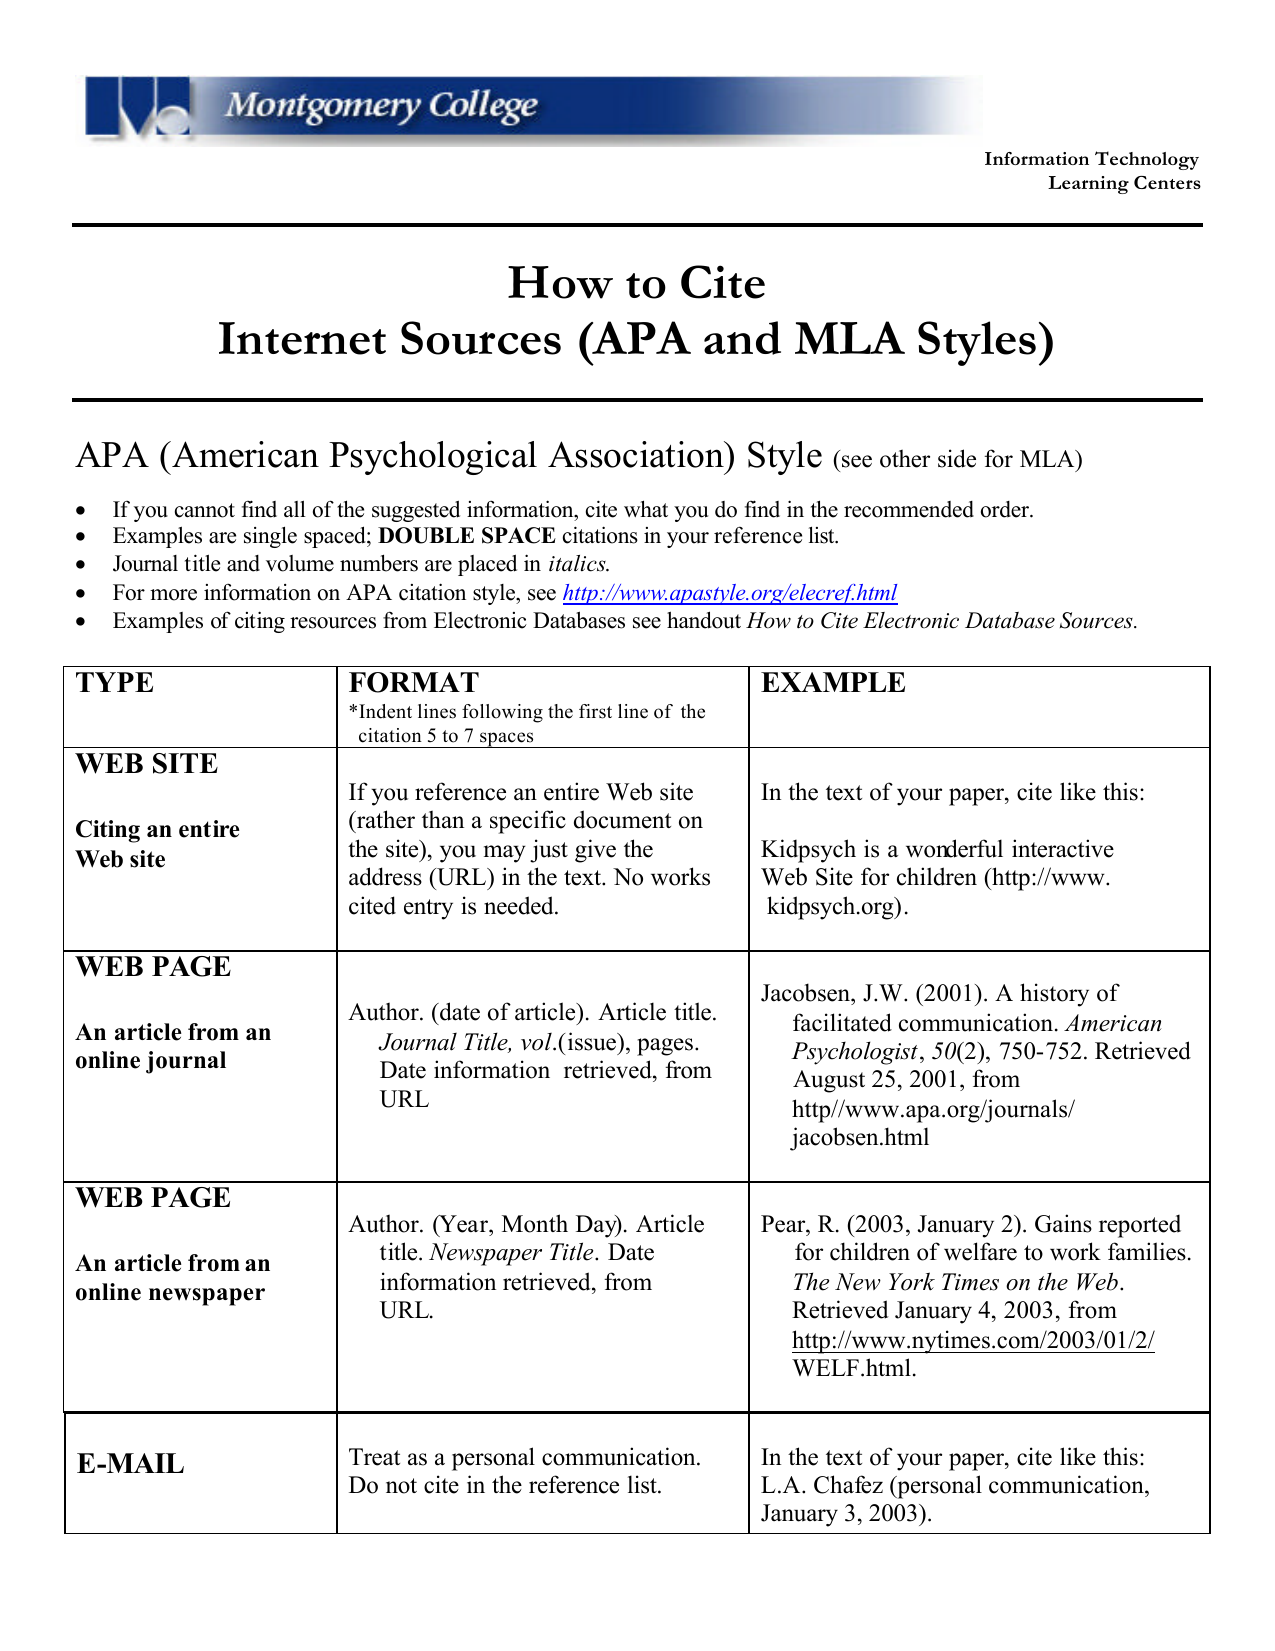 How To Cite Internet Sources Apa And Mla Styles